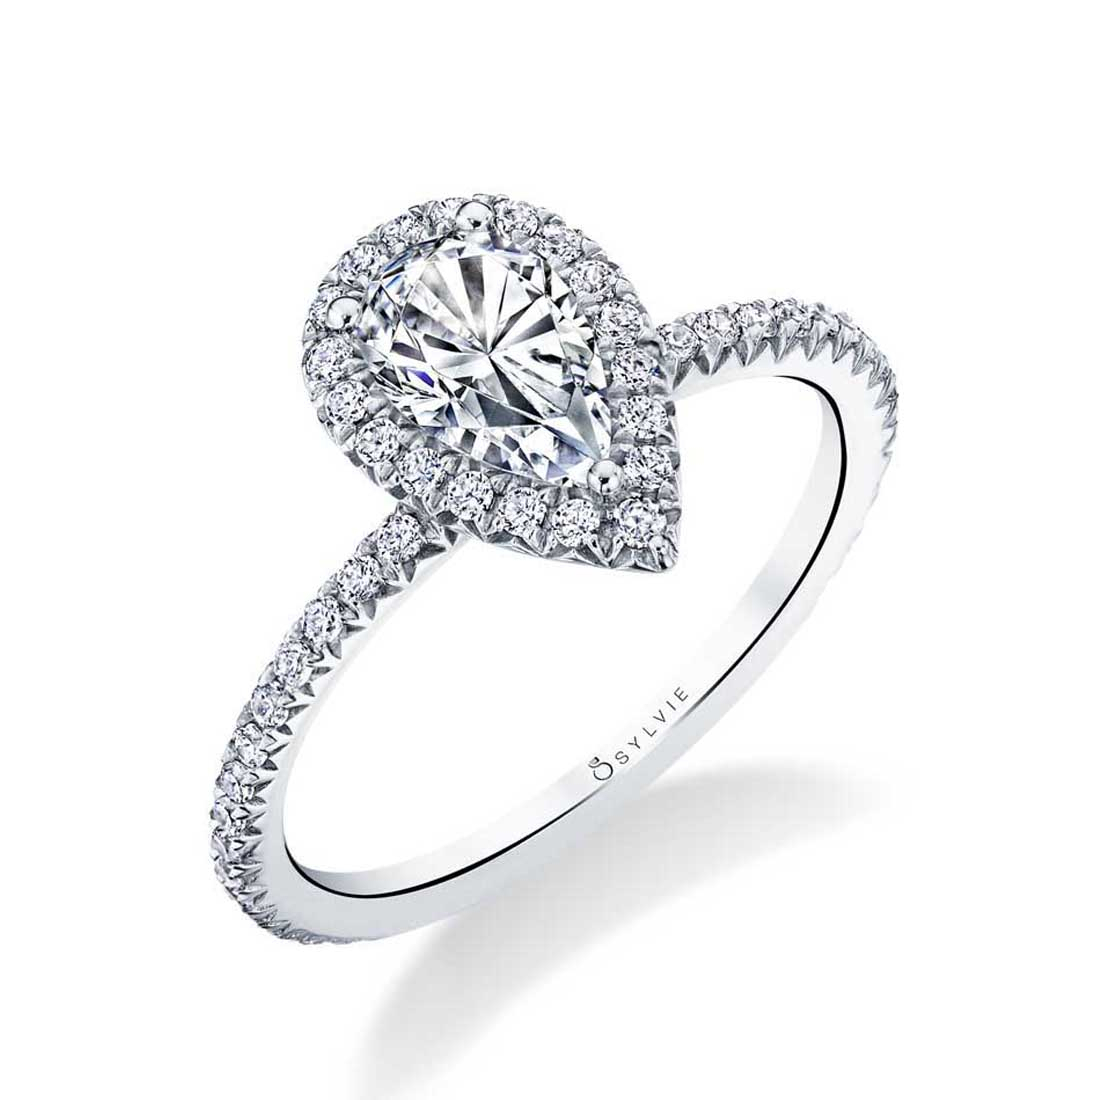 Vivian – Pear Shaped Halo Engagement Ring – Sylvie Collection Regarding Newest Sparkling Teardrop Halo Rings (View 15 of 25)